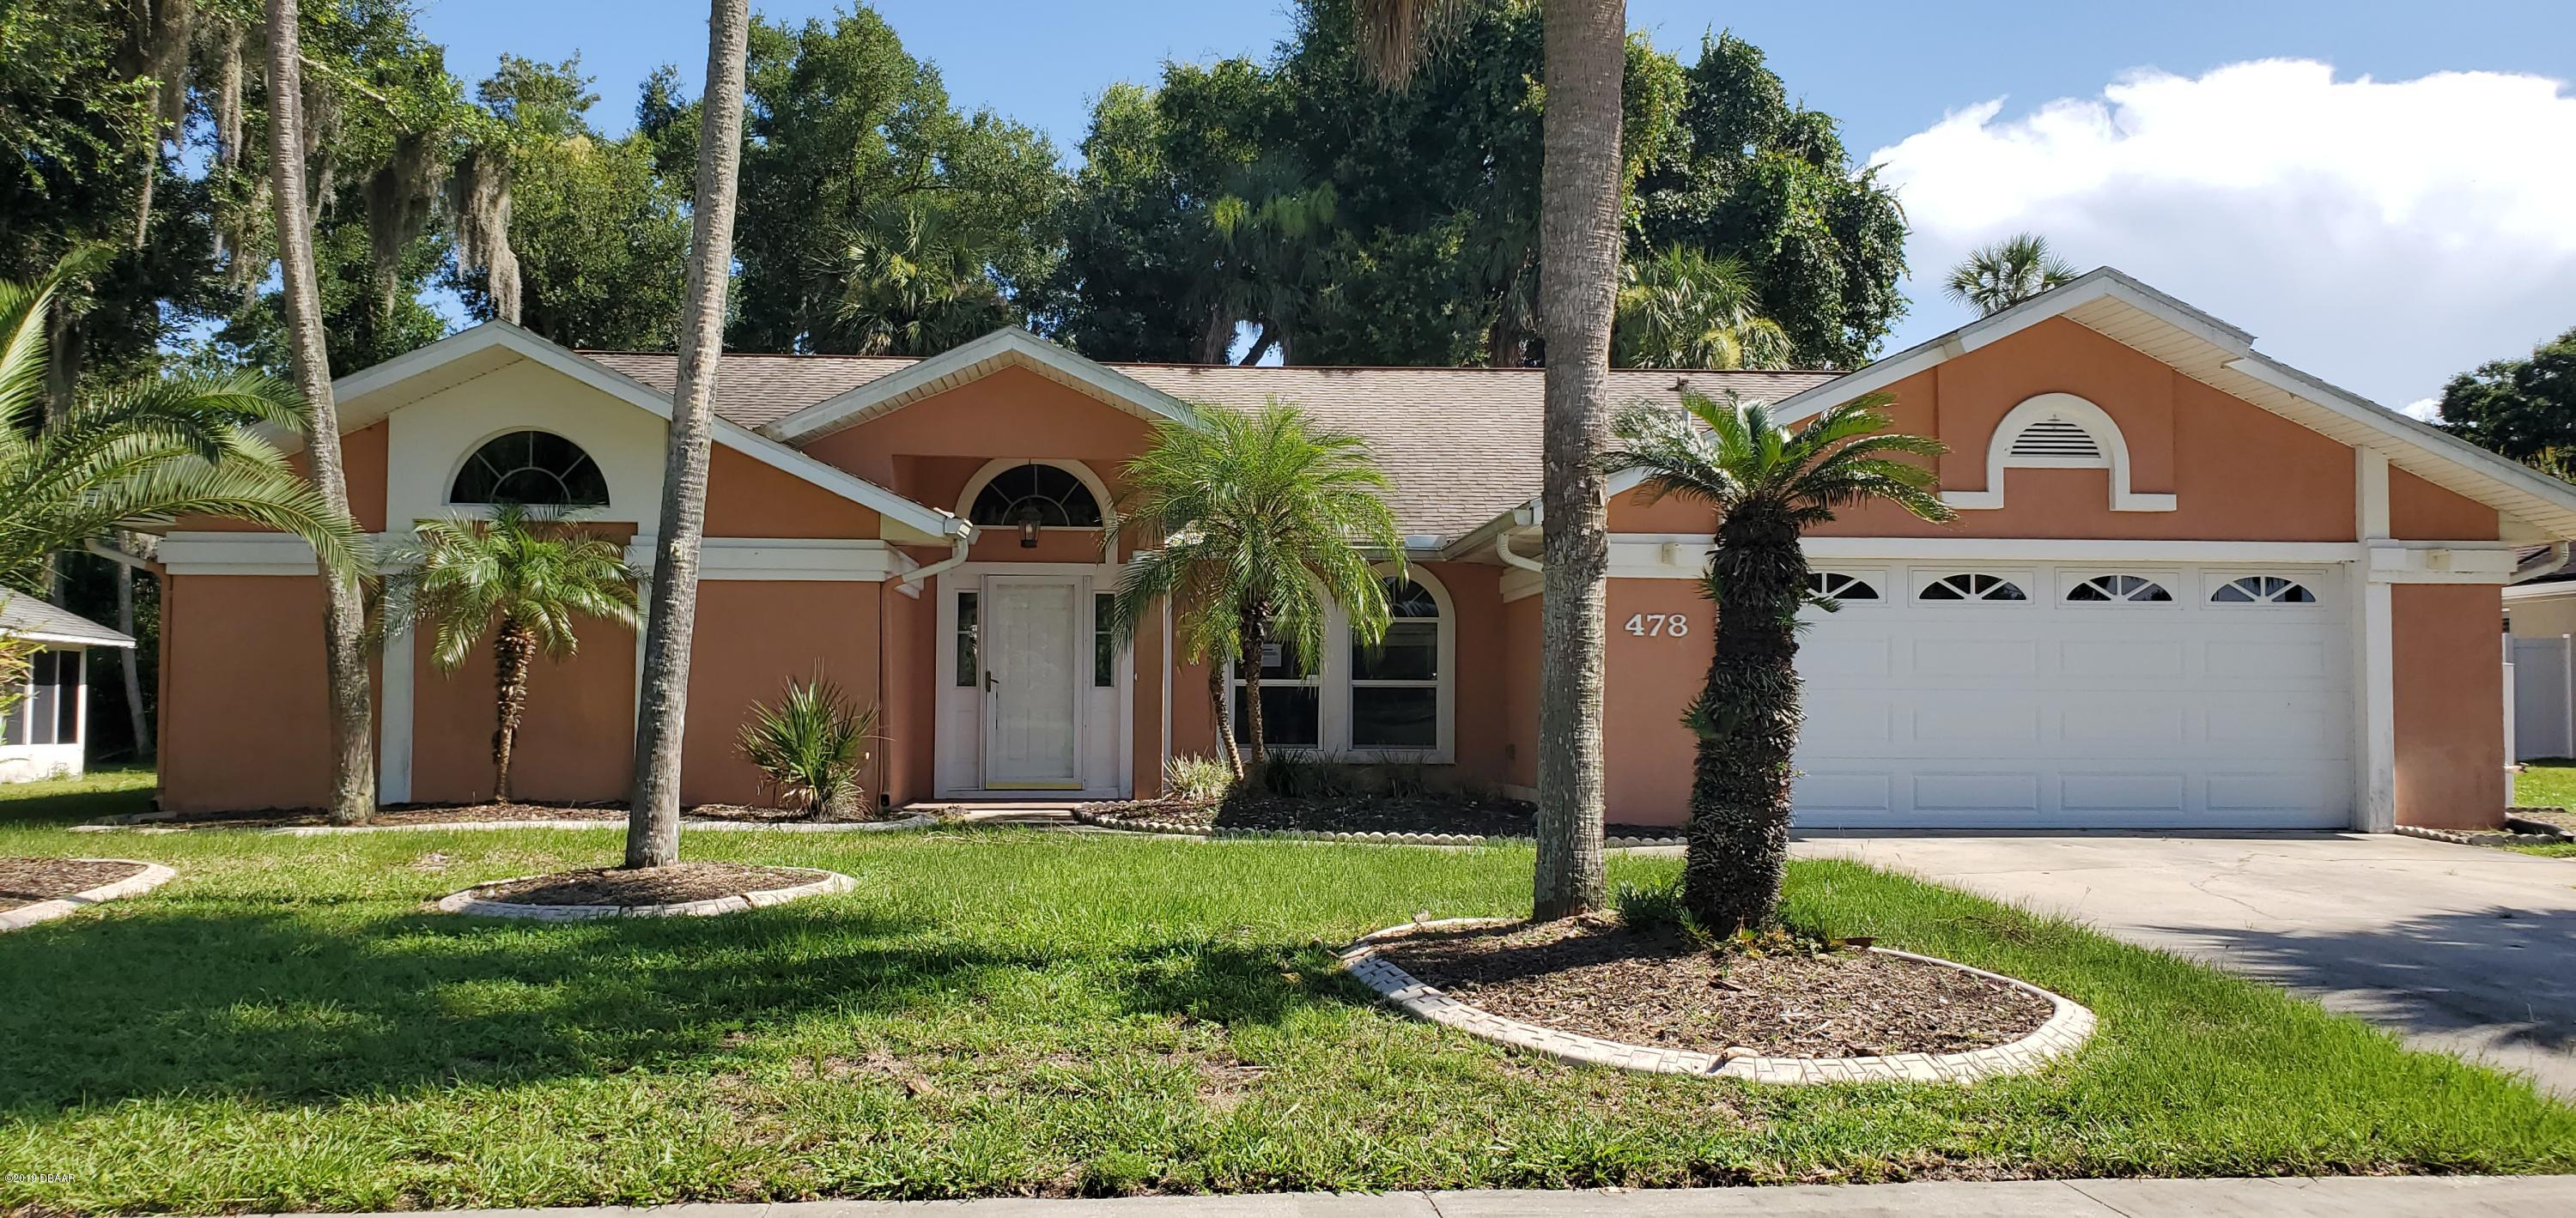 One of Ponce Inlet 3 Bedroom Homes for Sale at 478 Oakland Park Boulevard